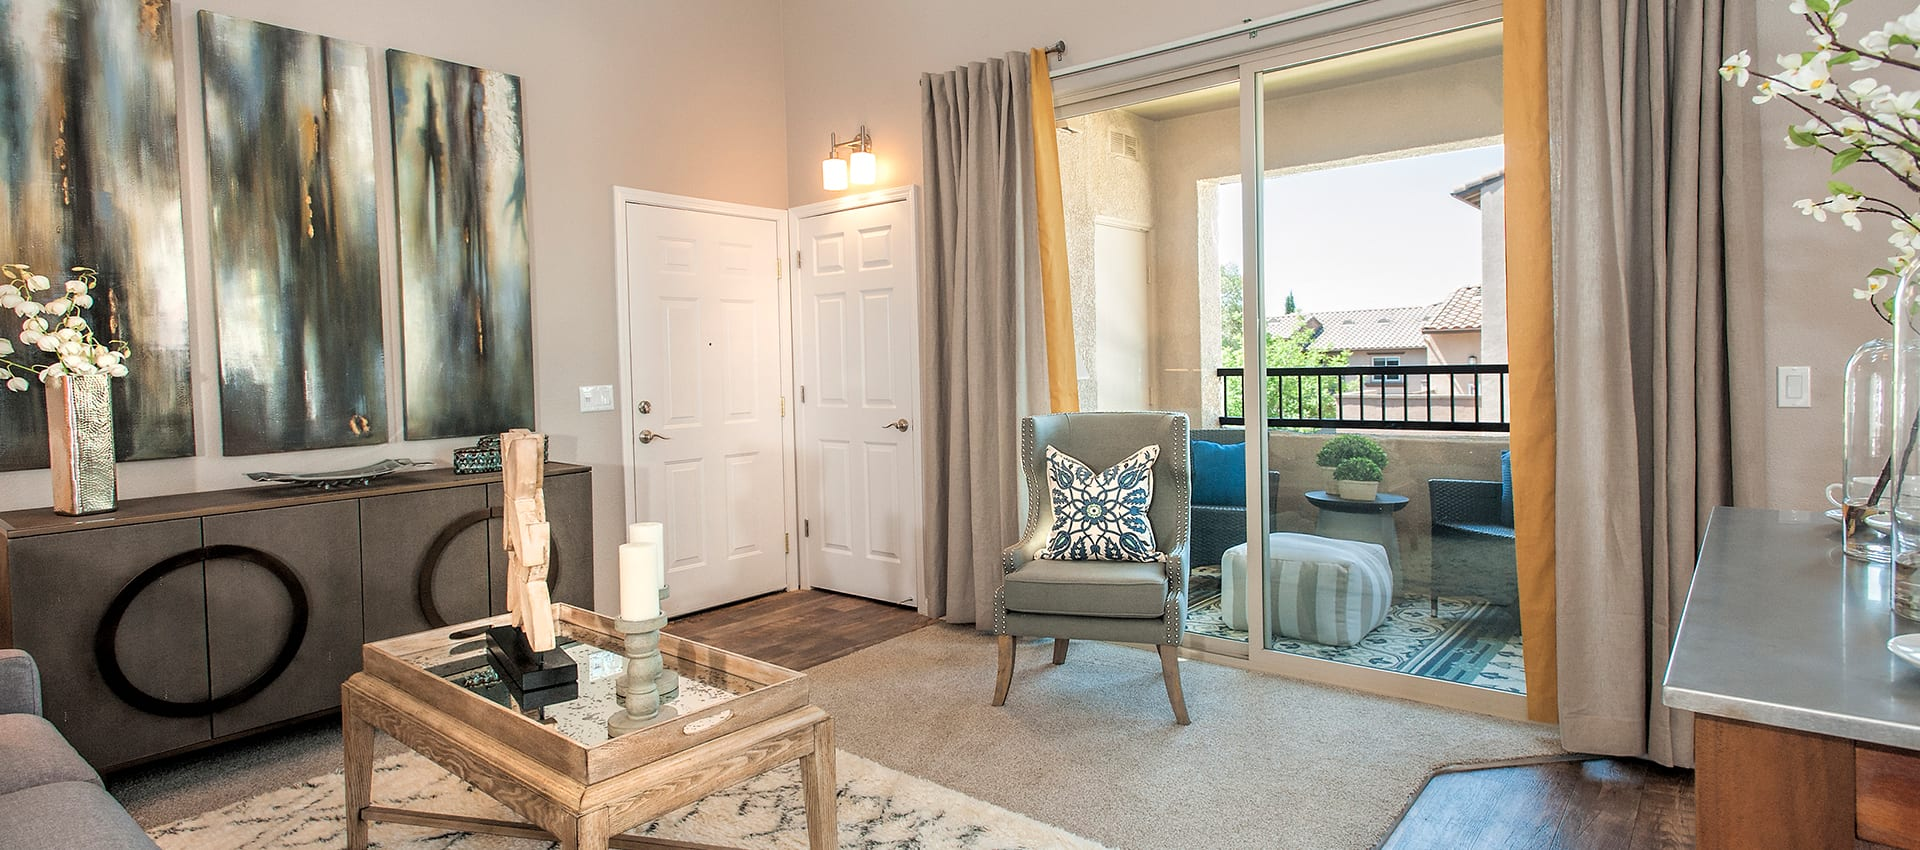 Model room featuring sliding glass door at Venu at Galleria Condominium Rentals in Roseville, California